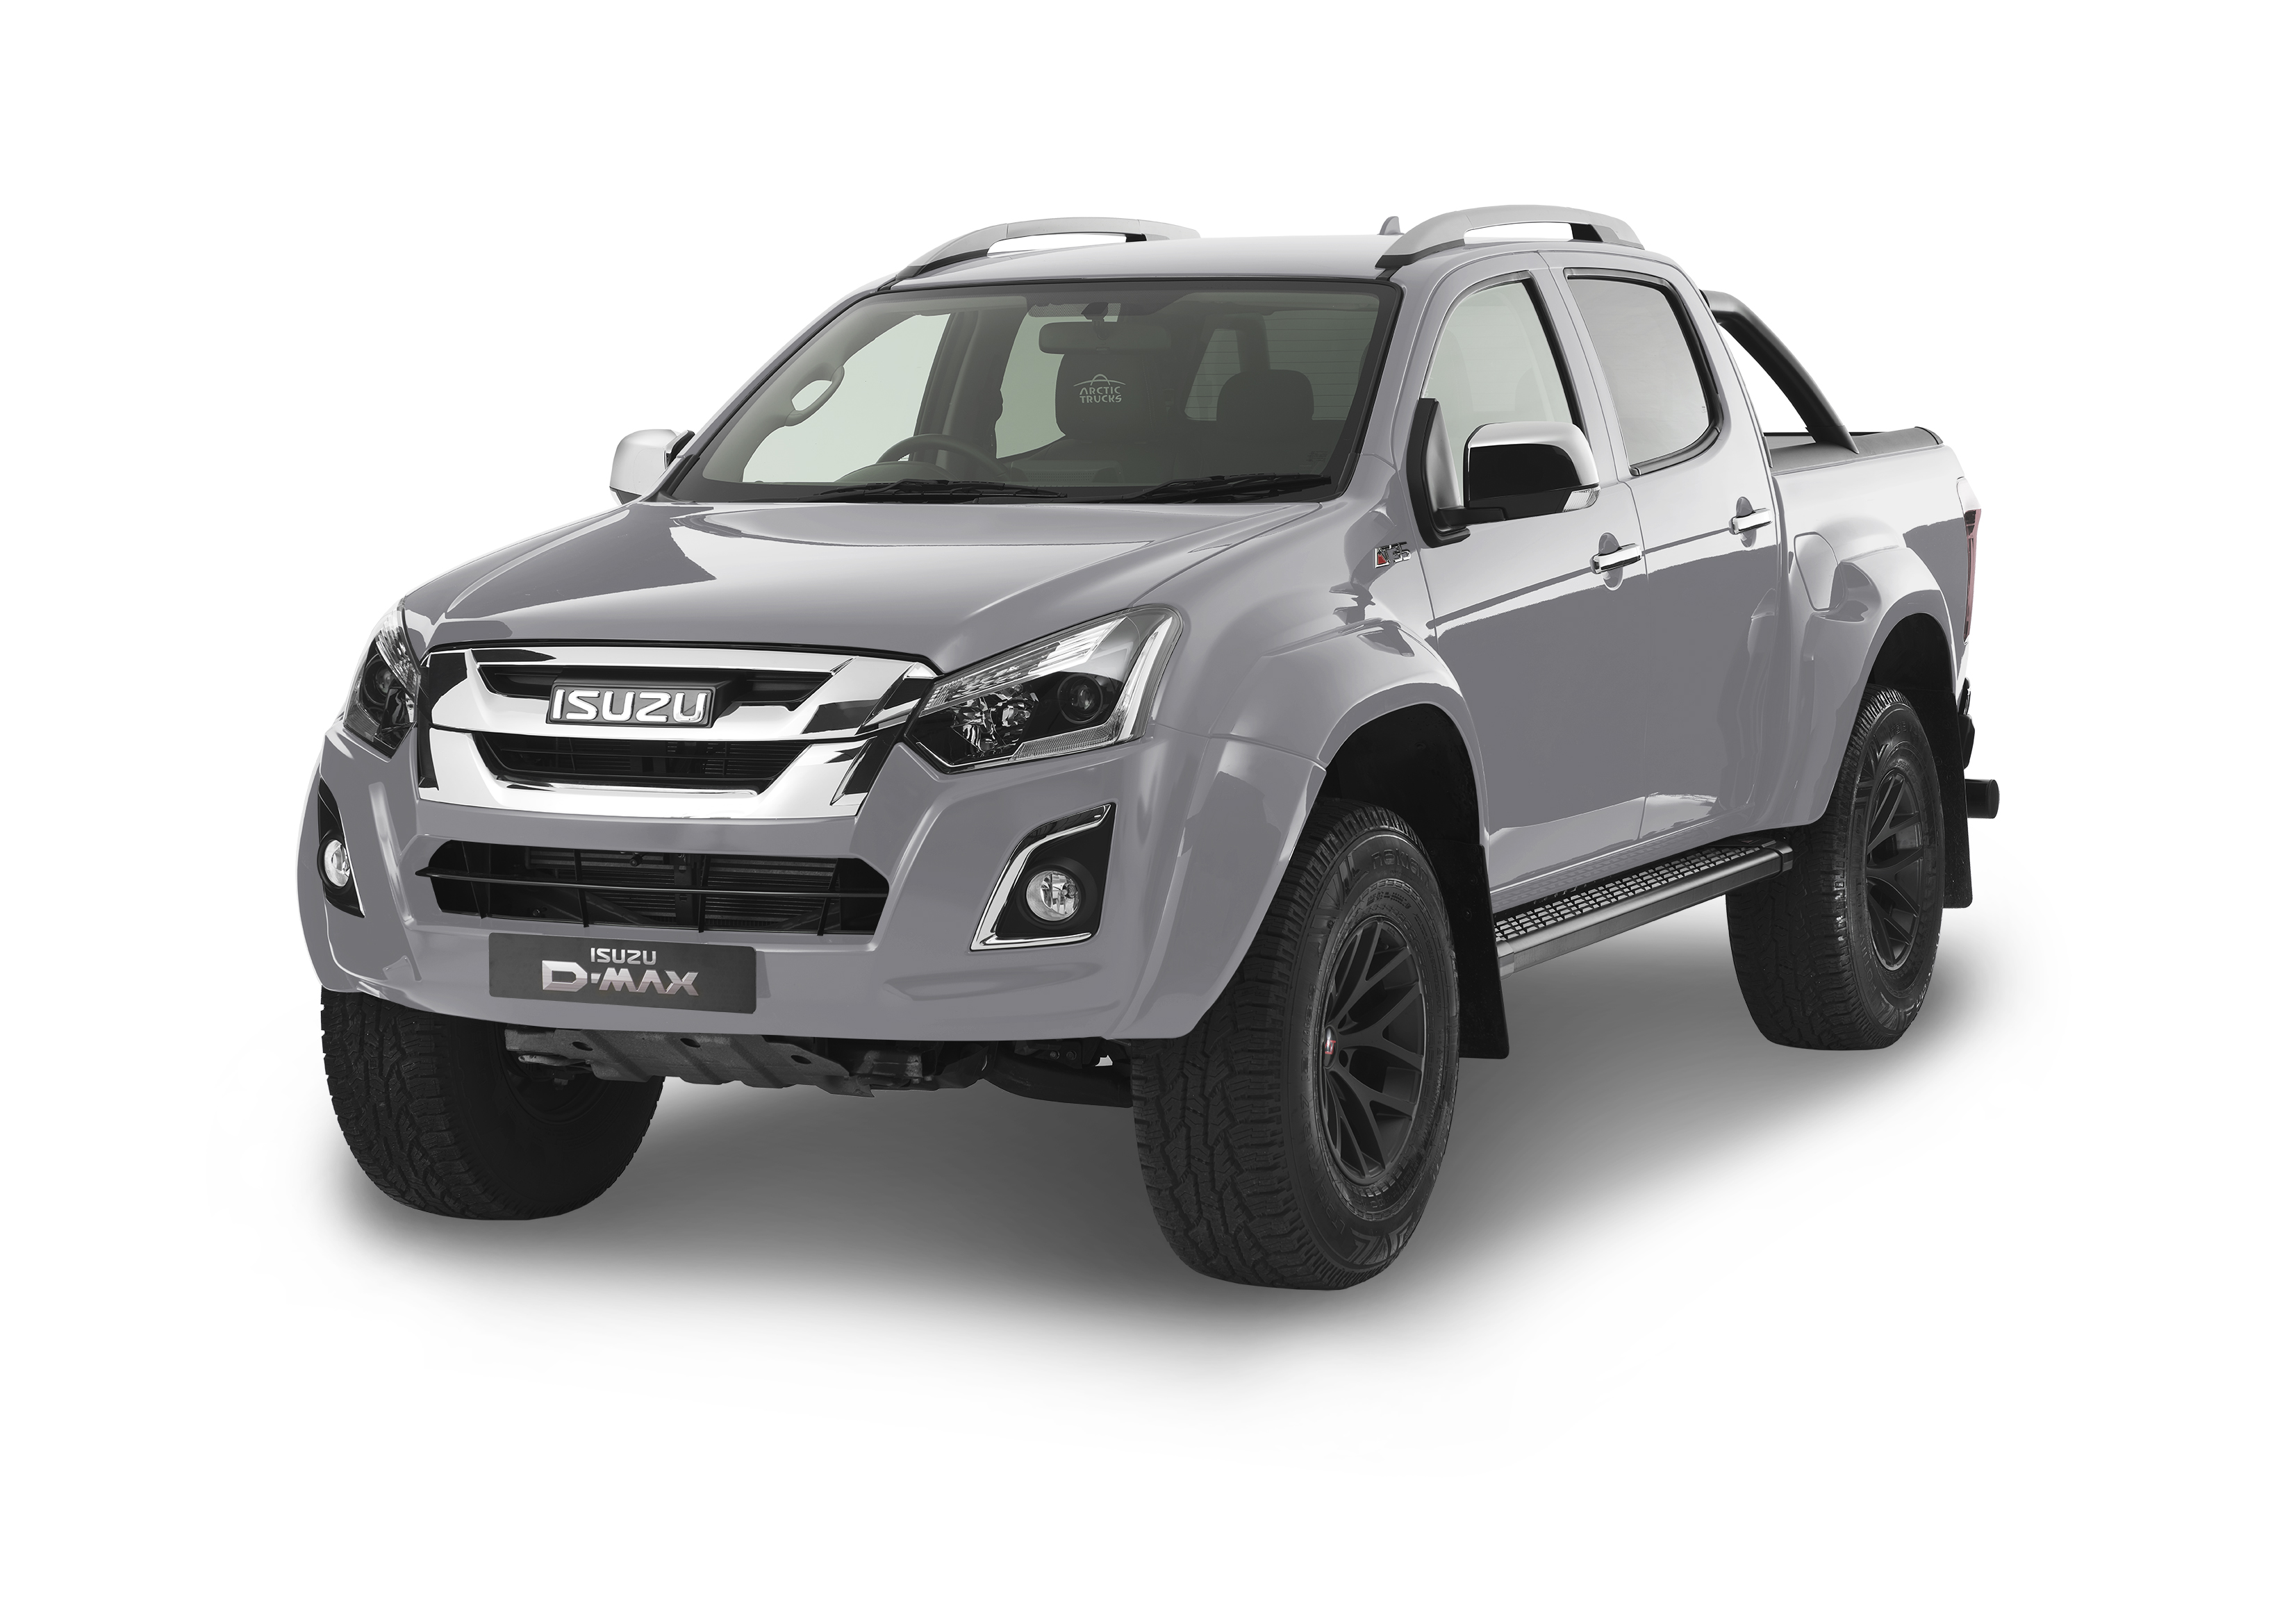 Front view of the Isuzu D-Max Arctic AT35 in silver